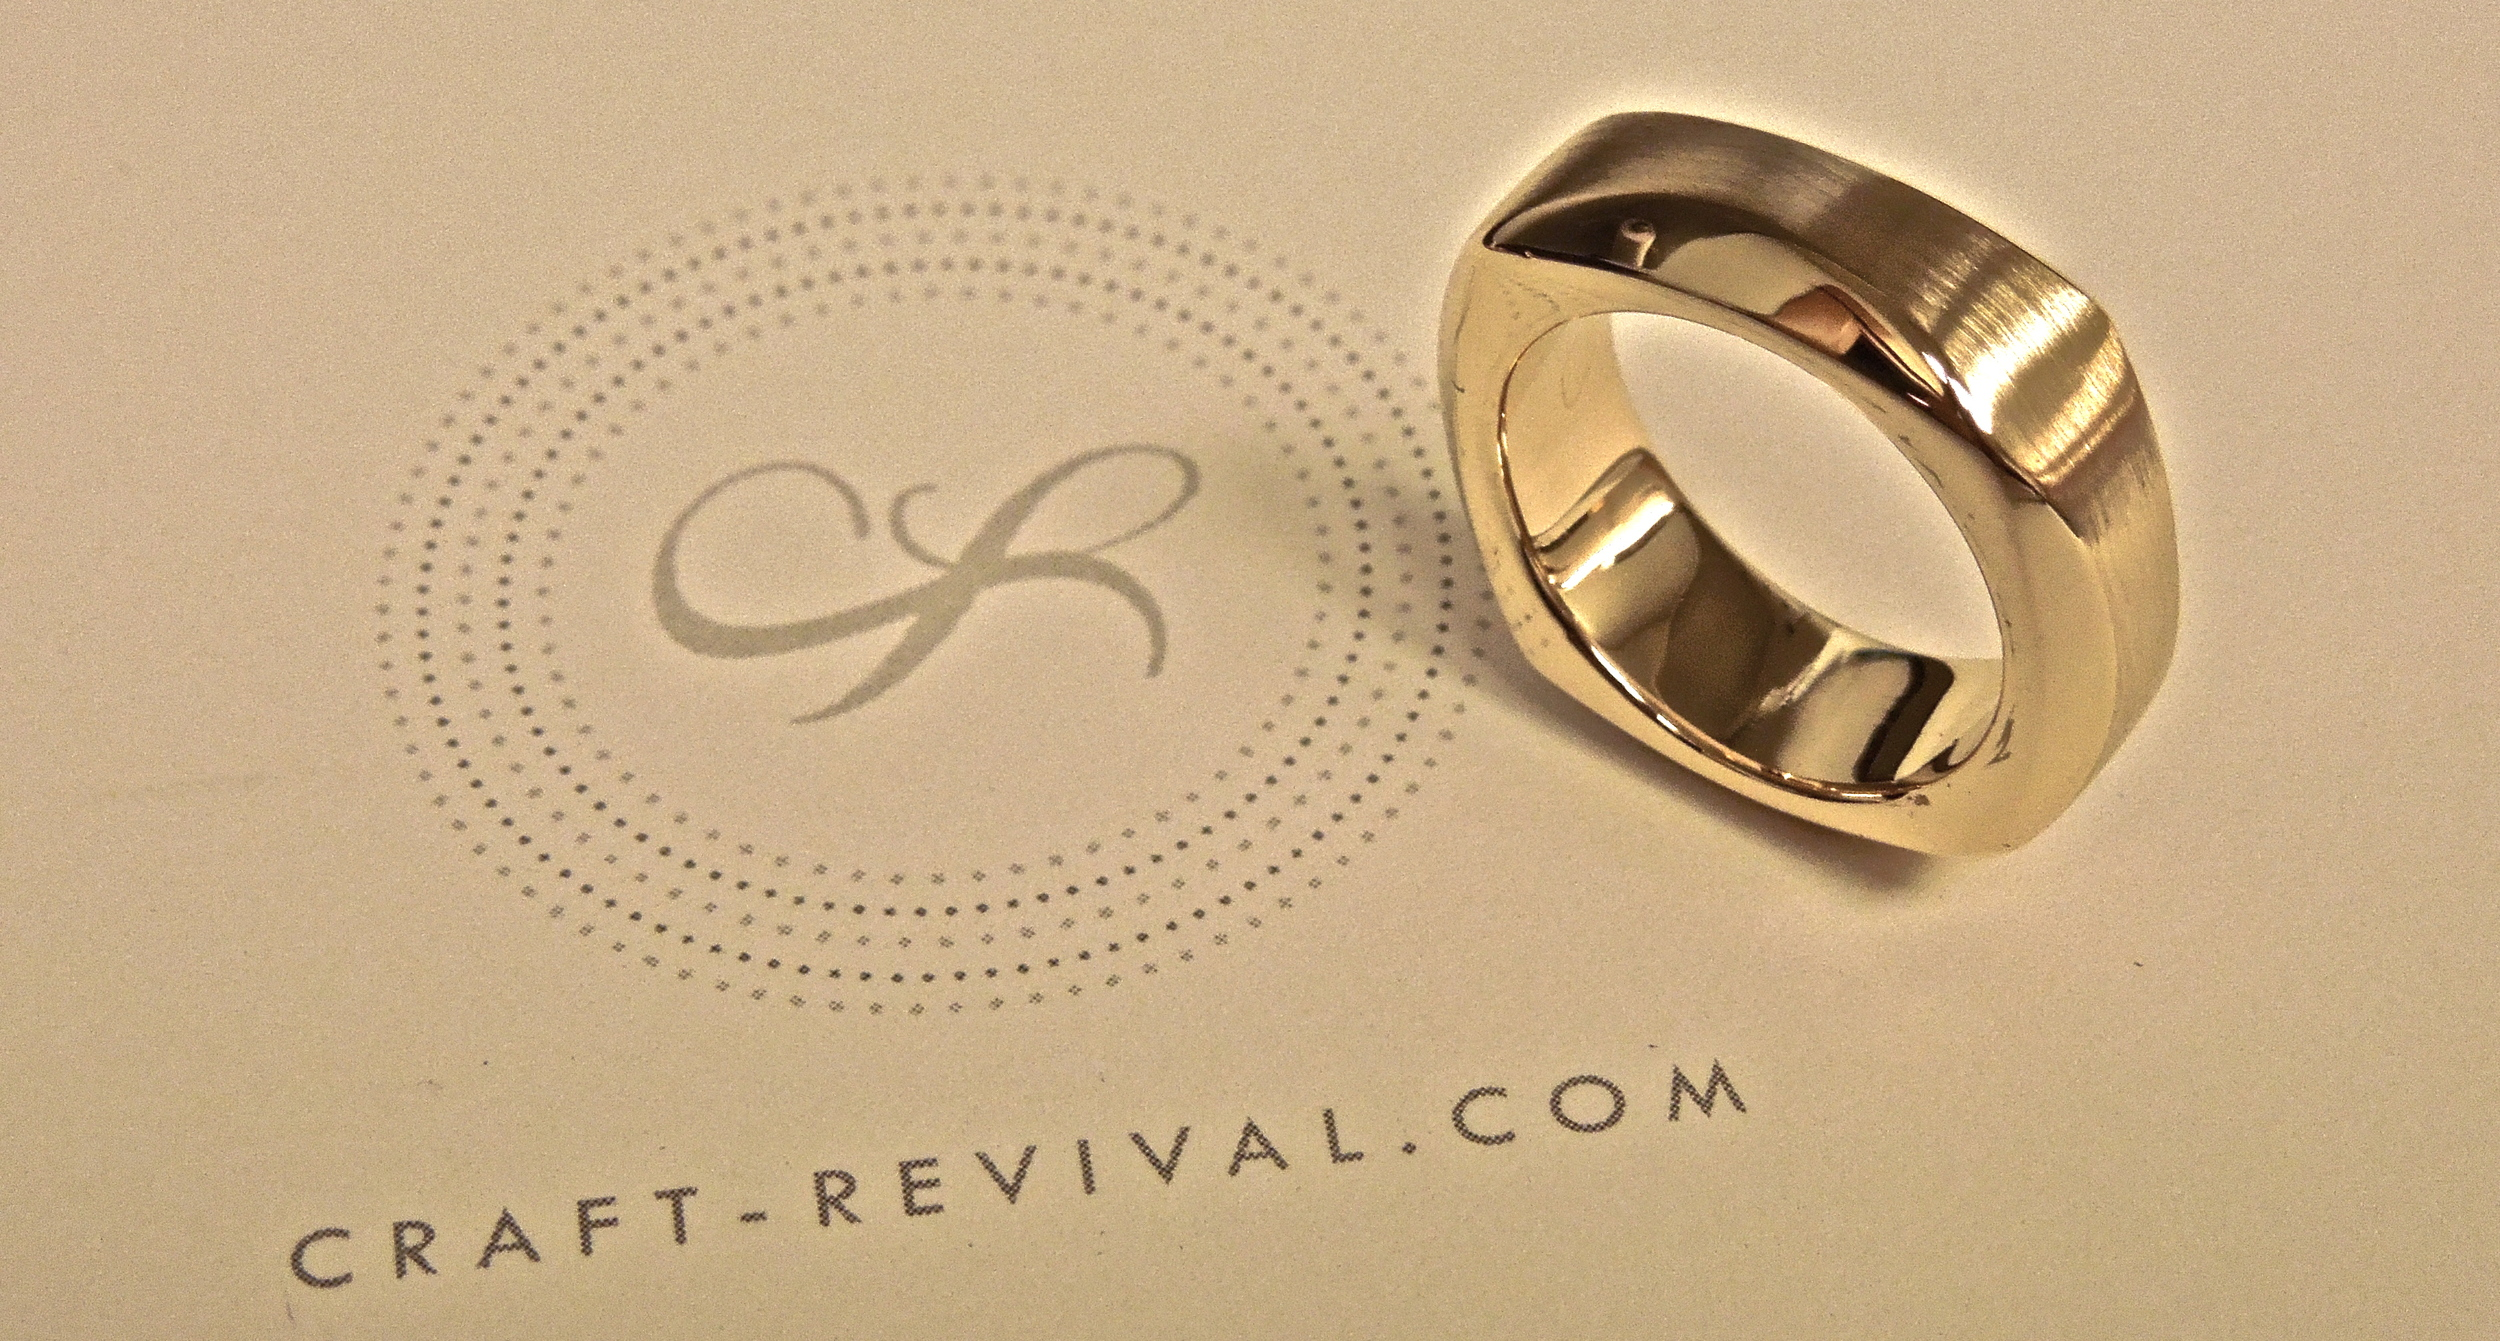 unique-modern-mens-band-wedding-band-gold-craft-revival-jewelry-store-grand-rapids